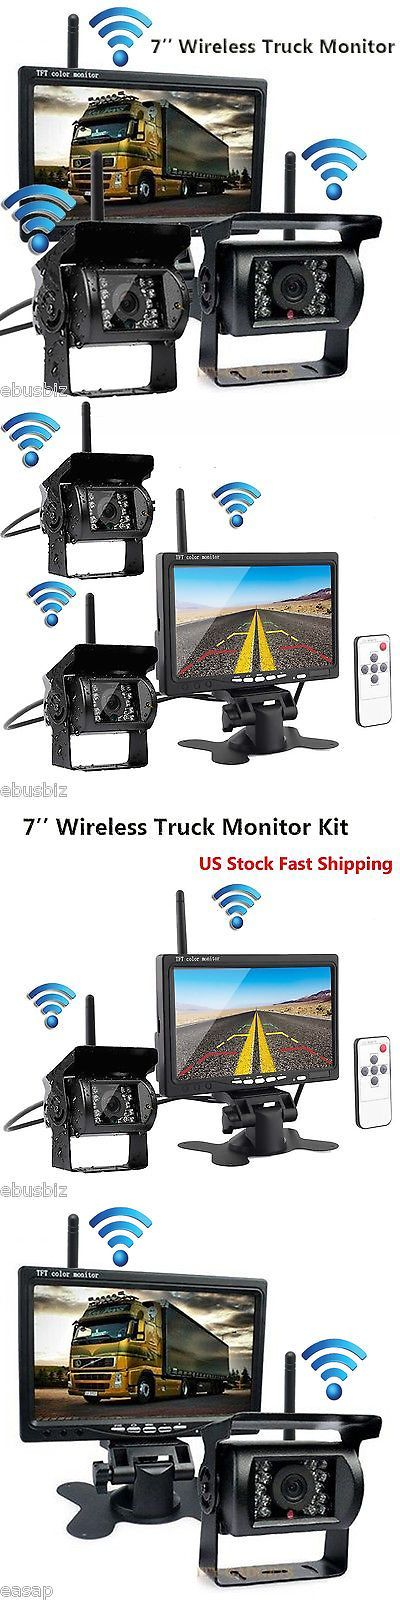 Rear View Monitors Cams and Kits: 7 Hd Monitor+2 Wireless Reversing Ir Backup Camera For Truck Trailer Bus Rv Kit -> BUY IT NOW ONLY: $95.99 on eBay!